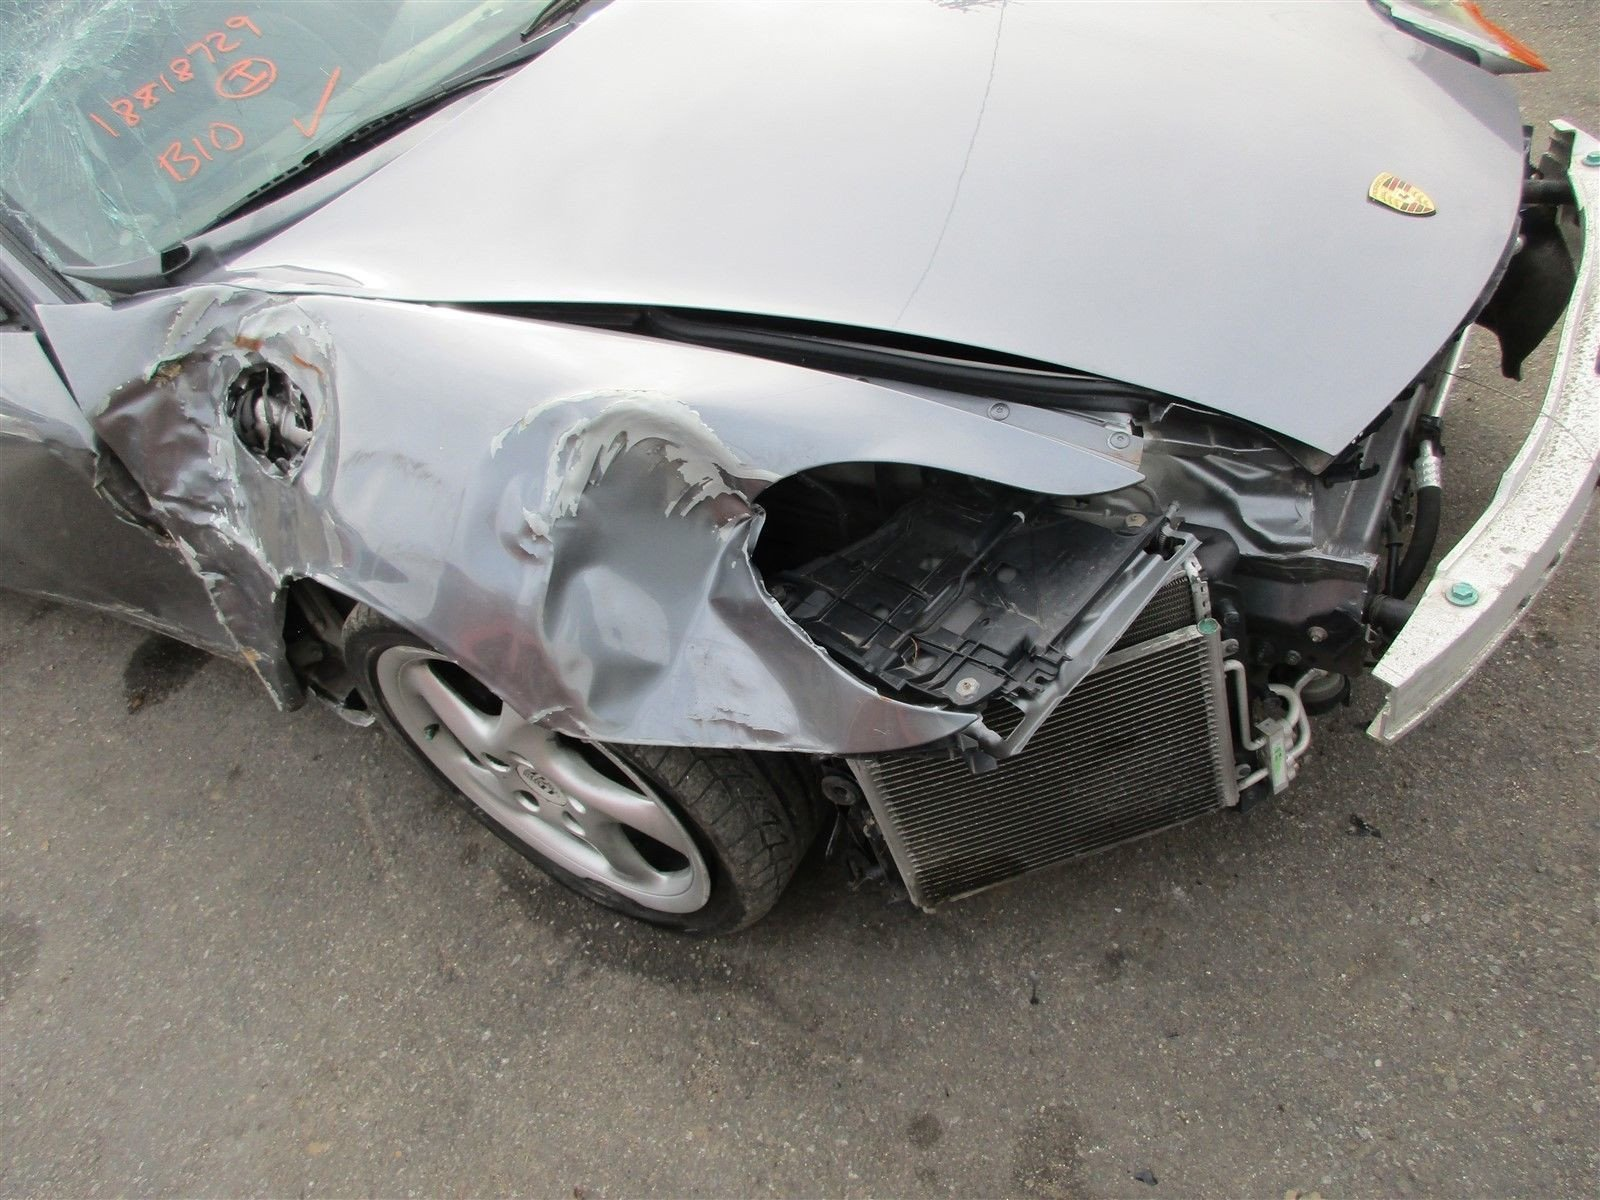 01 Boxster RWD Porsche 986 Parting Out parts car 90,361